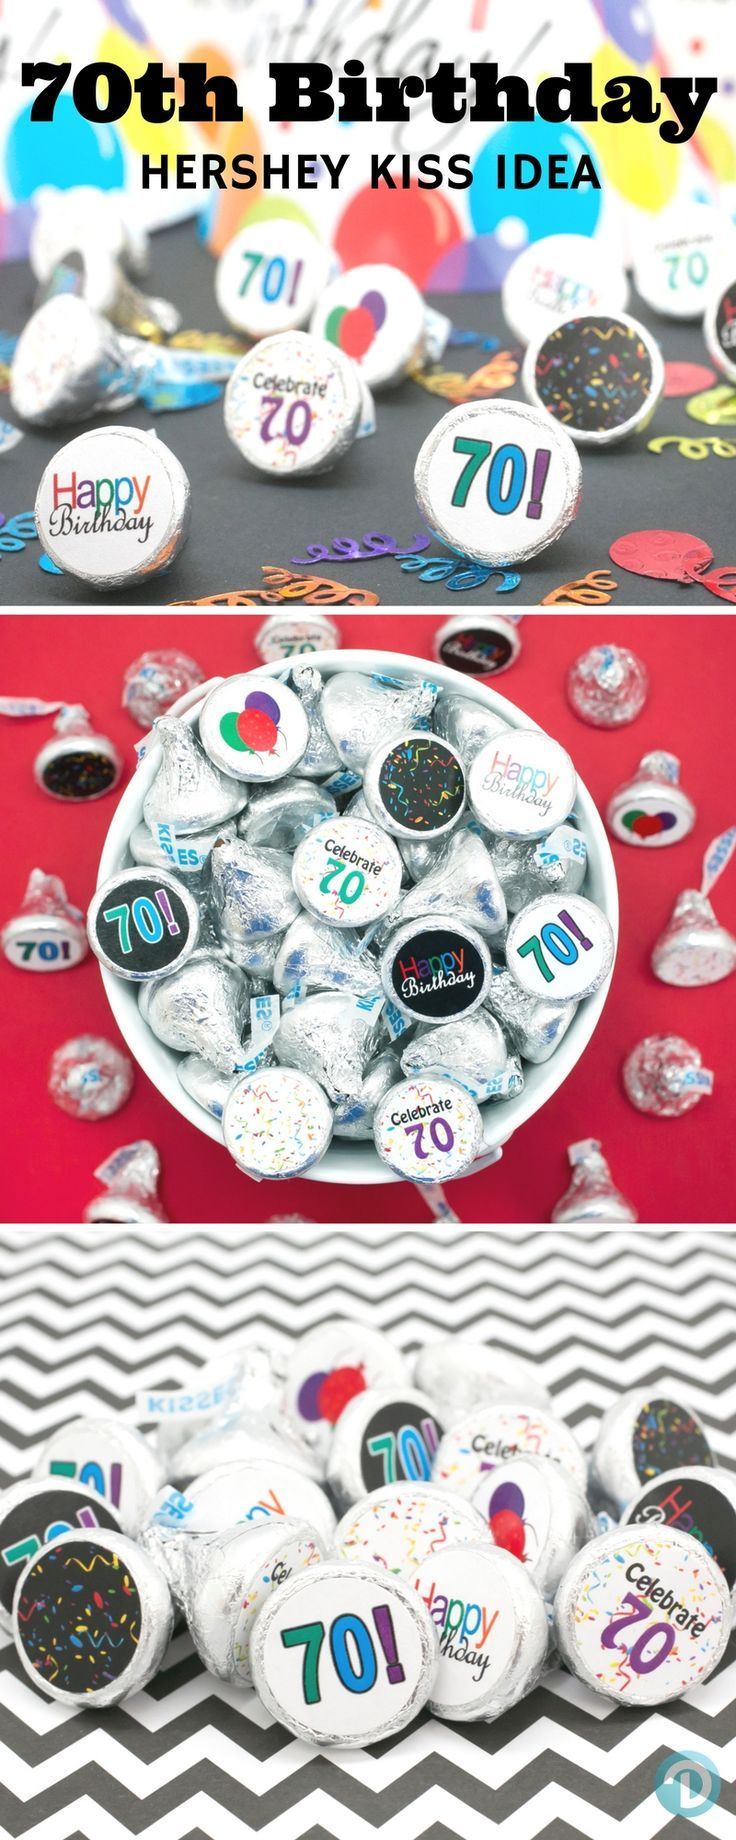 Happy 70th birthday sticker decorations for hershey kisses for Decoration 70th birthday